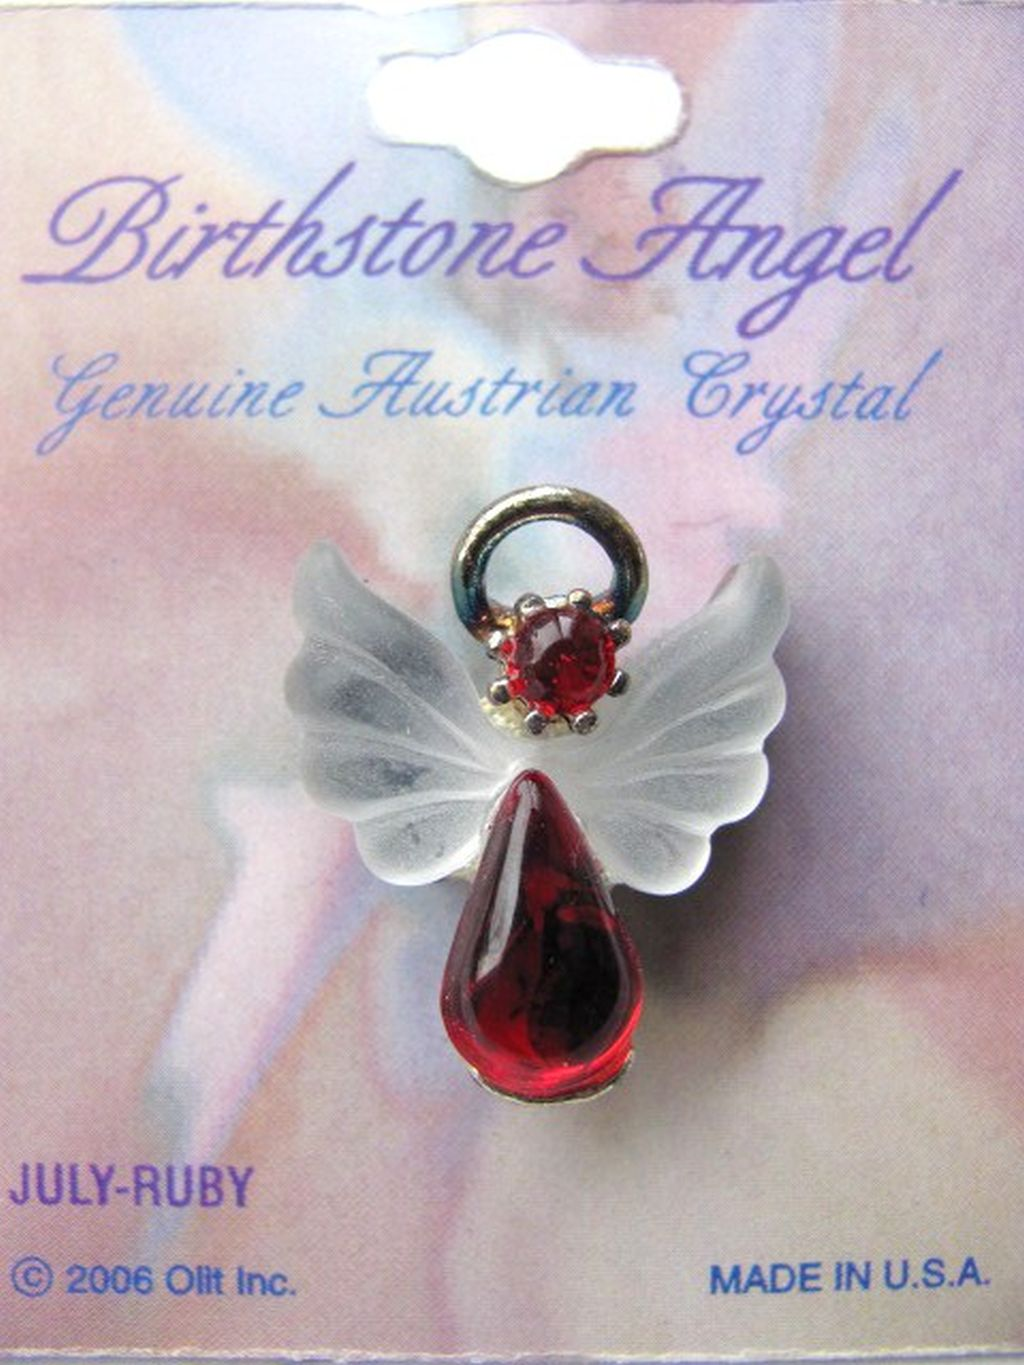 Ruby July Birthstone Angel Pin, Genuine Austrian Crystals